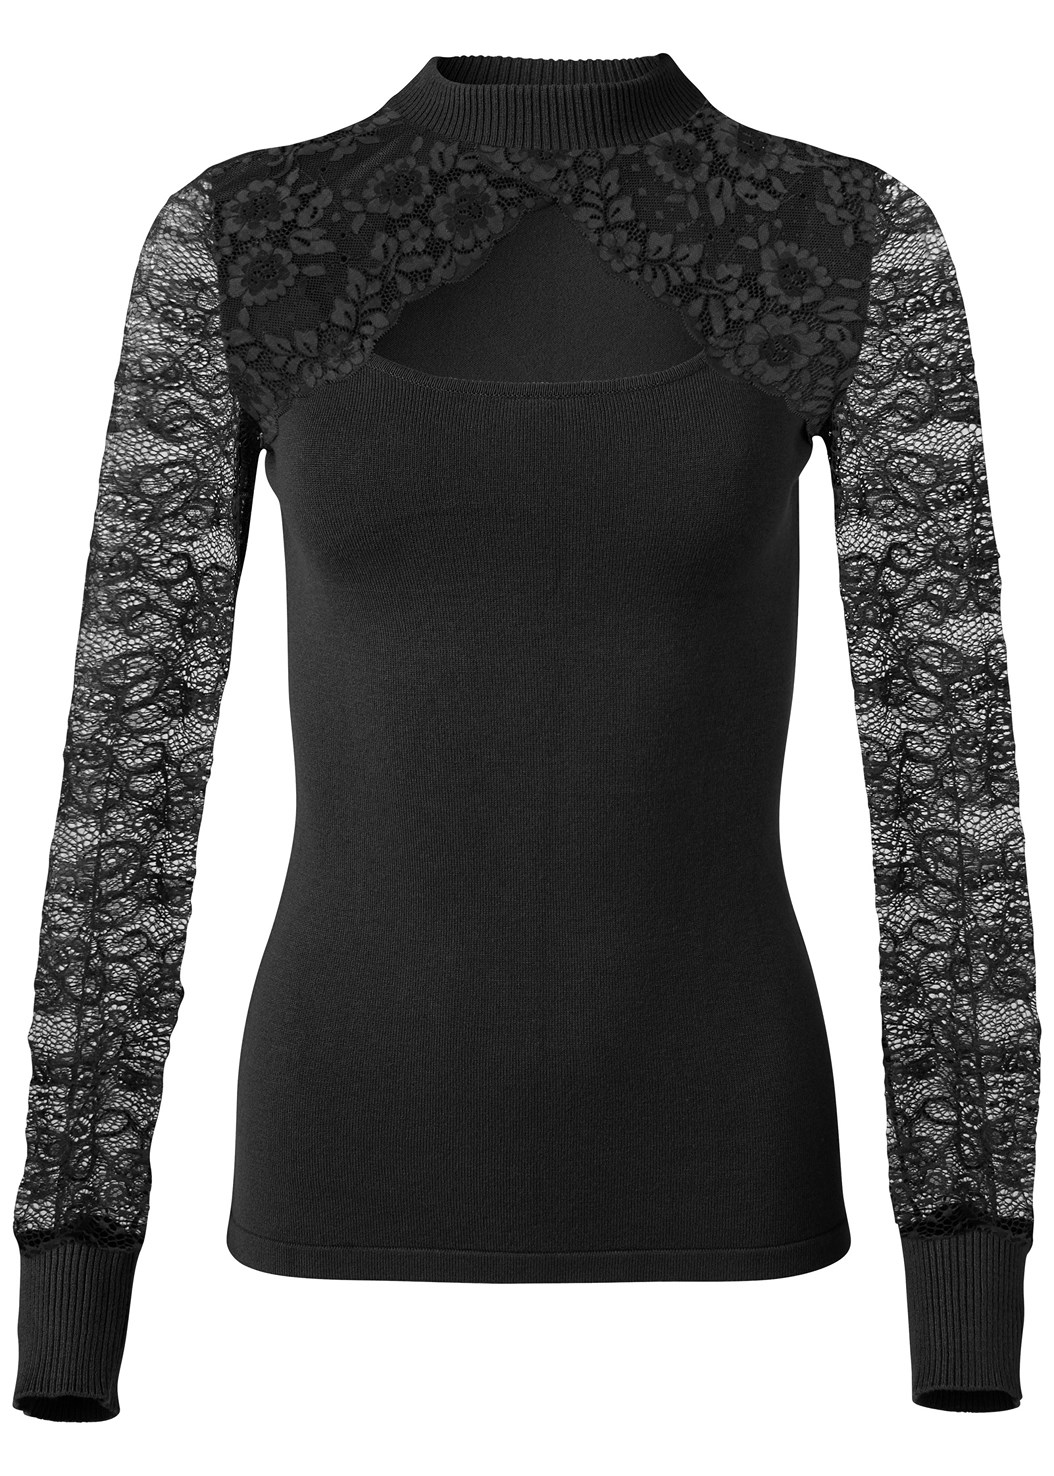 Cut Out Lace Sweater,Mid Rise Slimming Stretch Jeggings